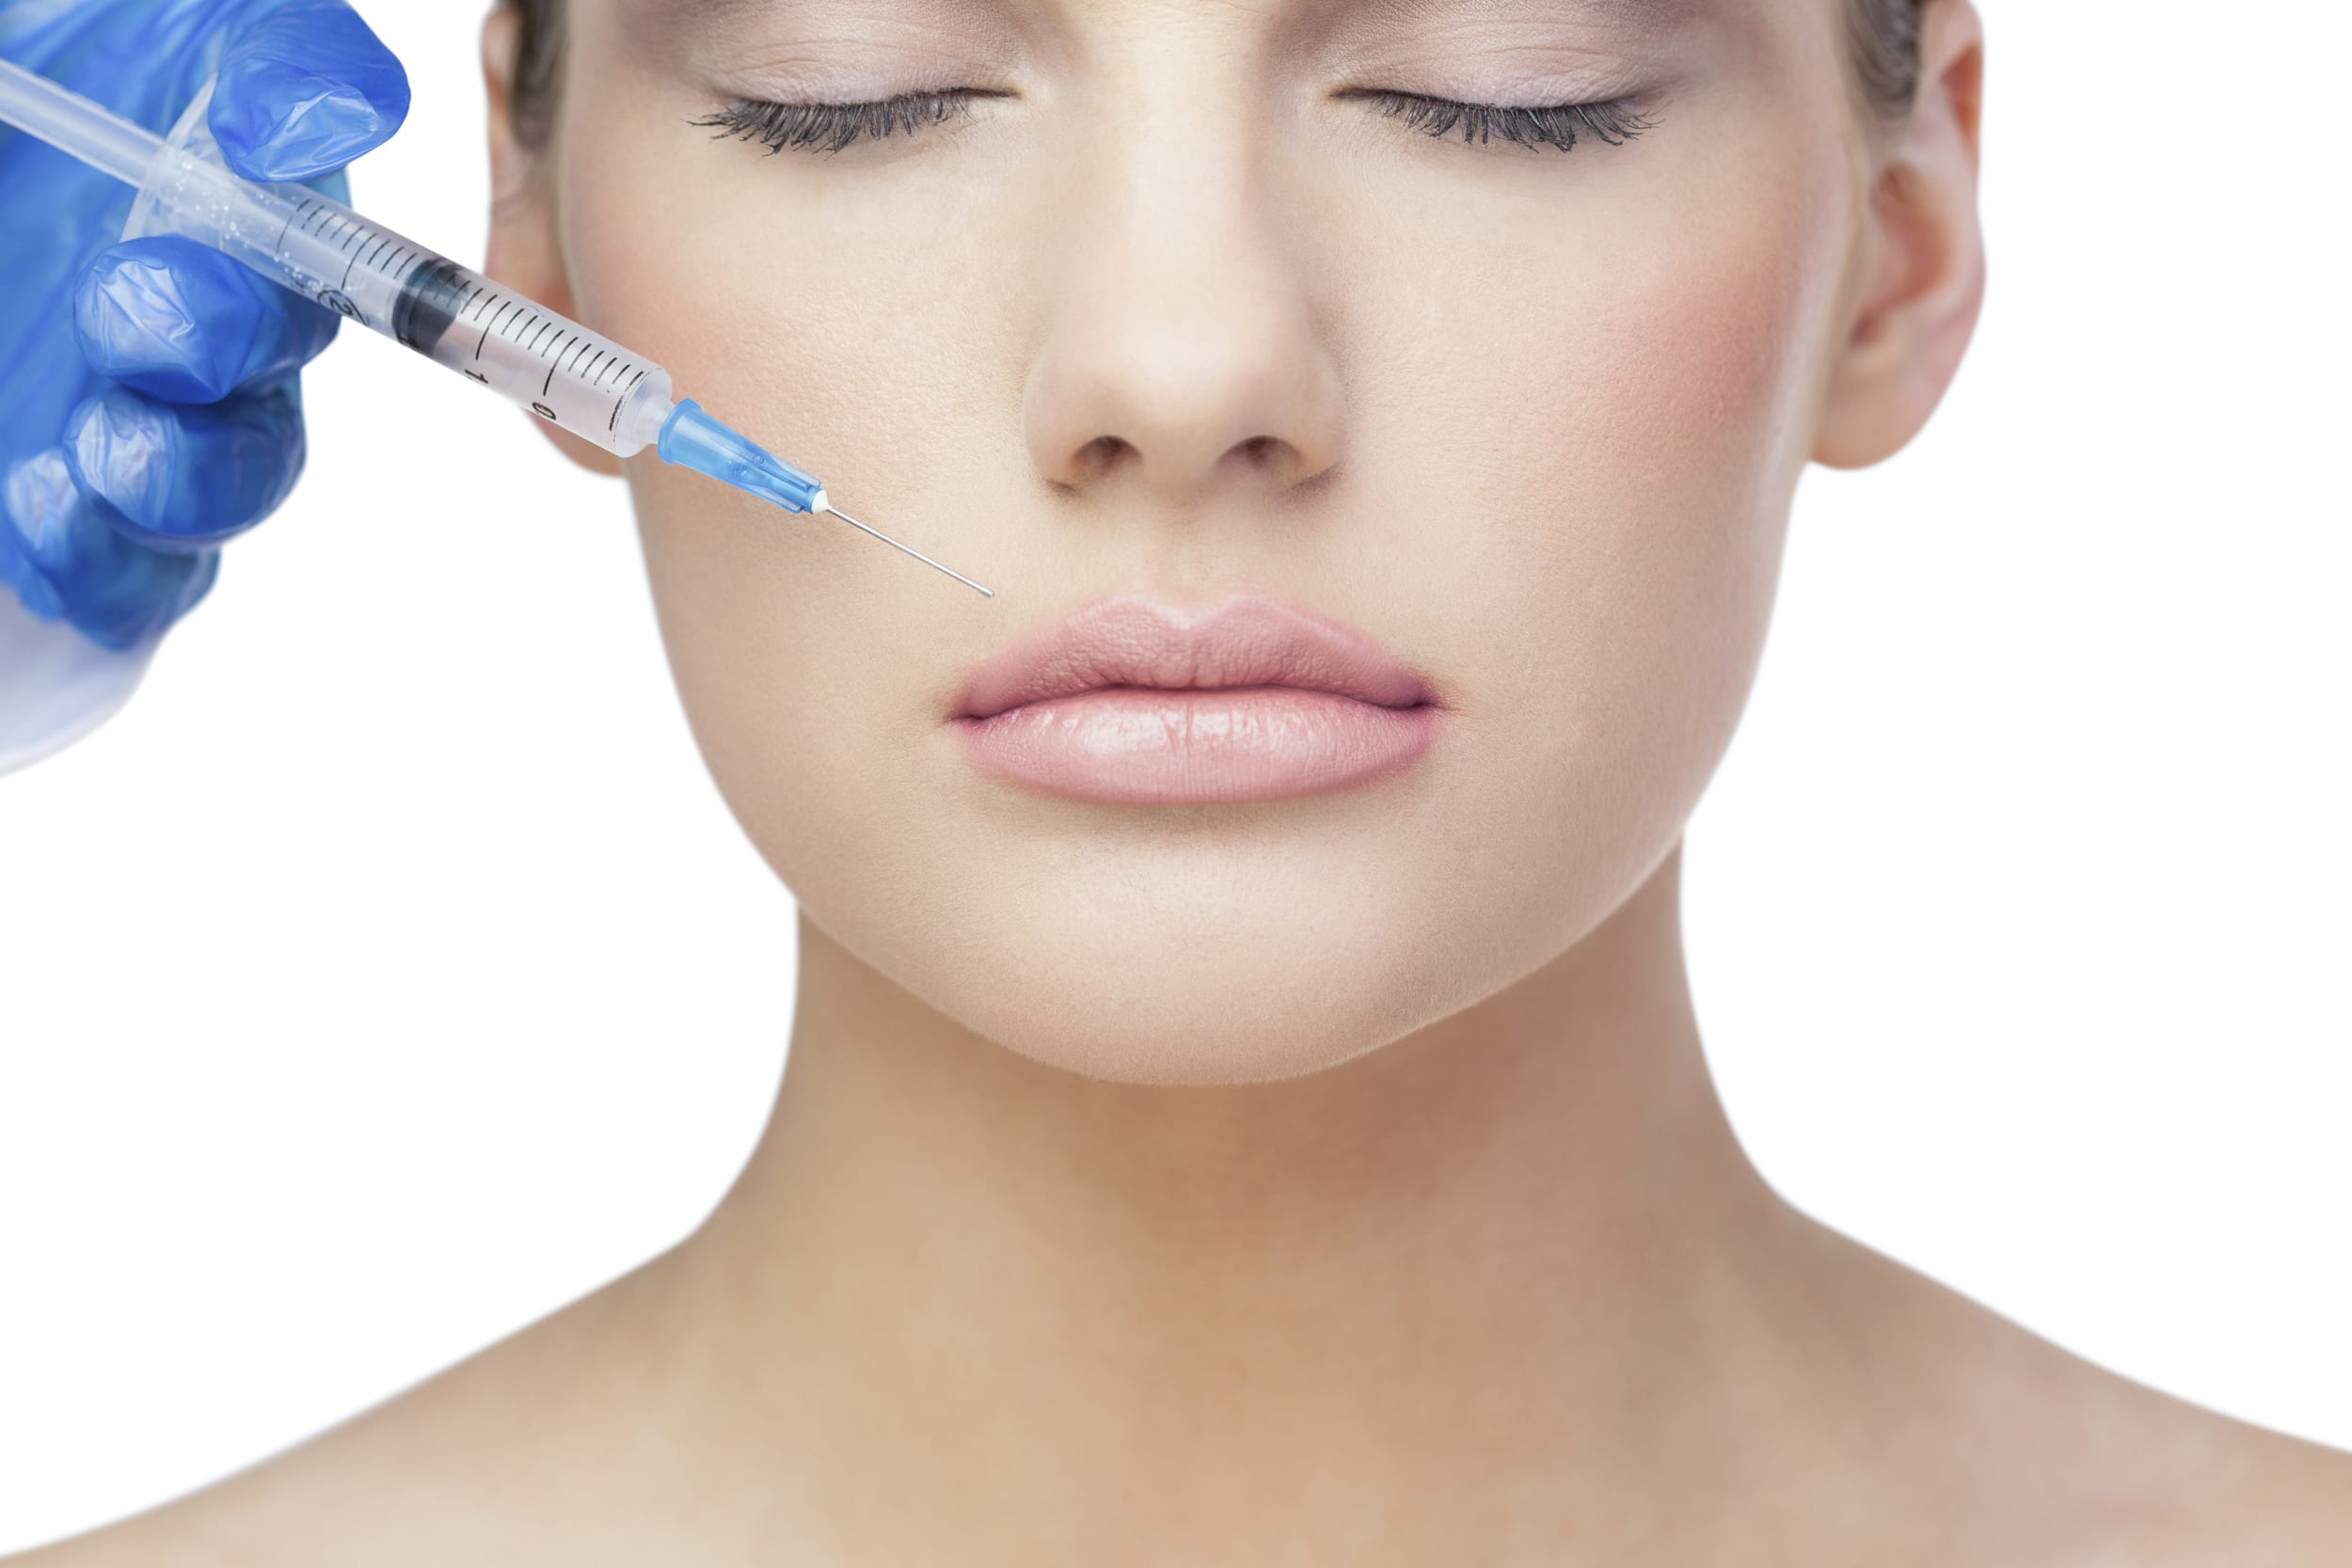 Dermal filler treatment in a professional practice